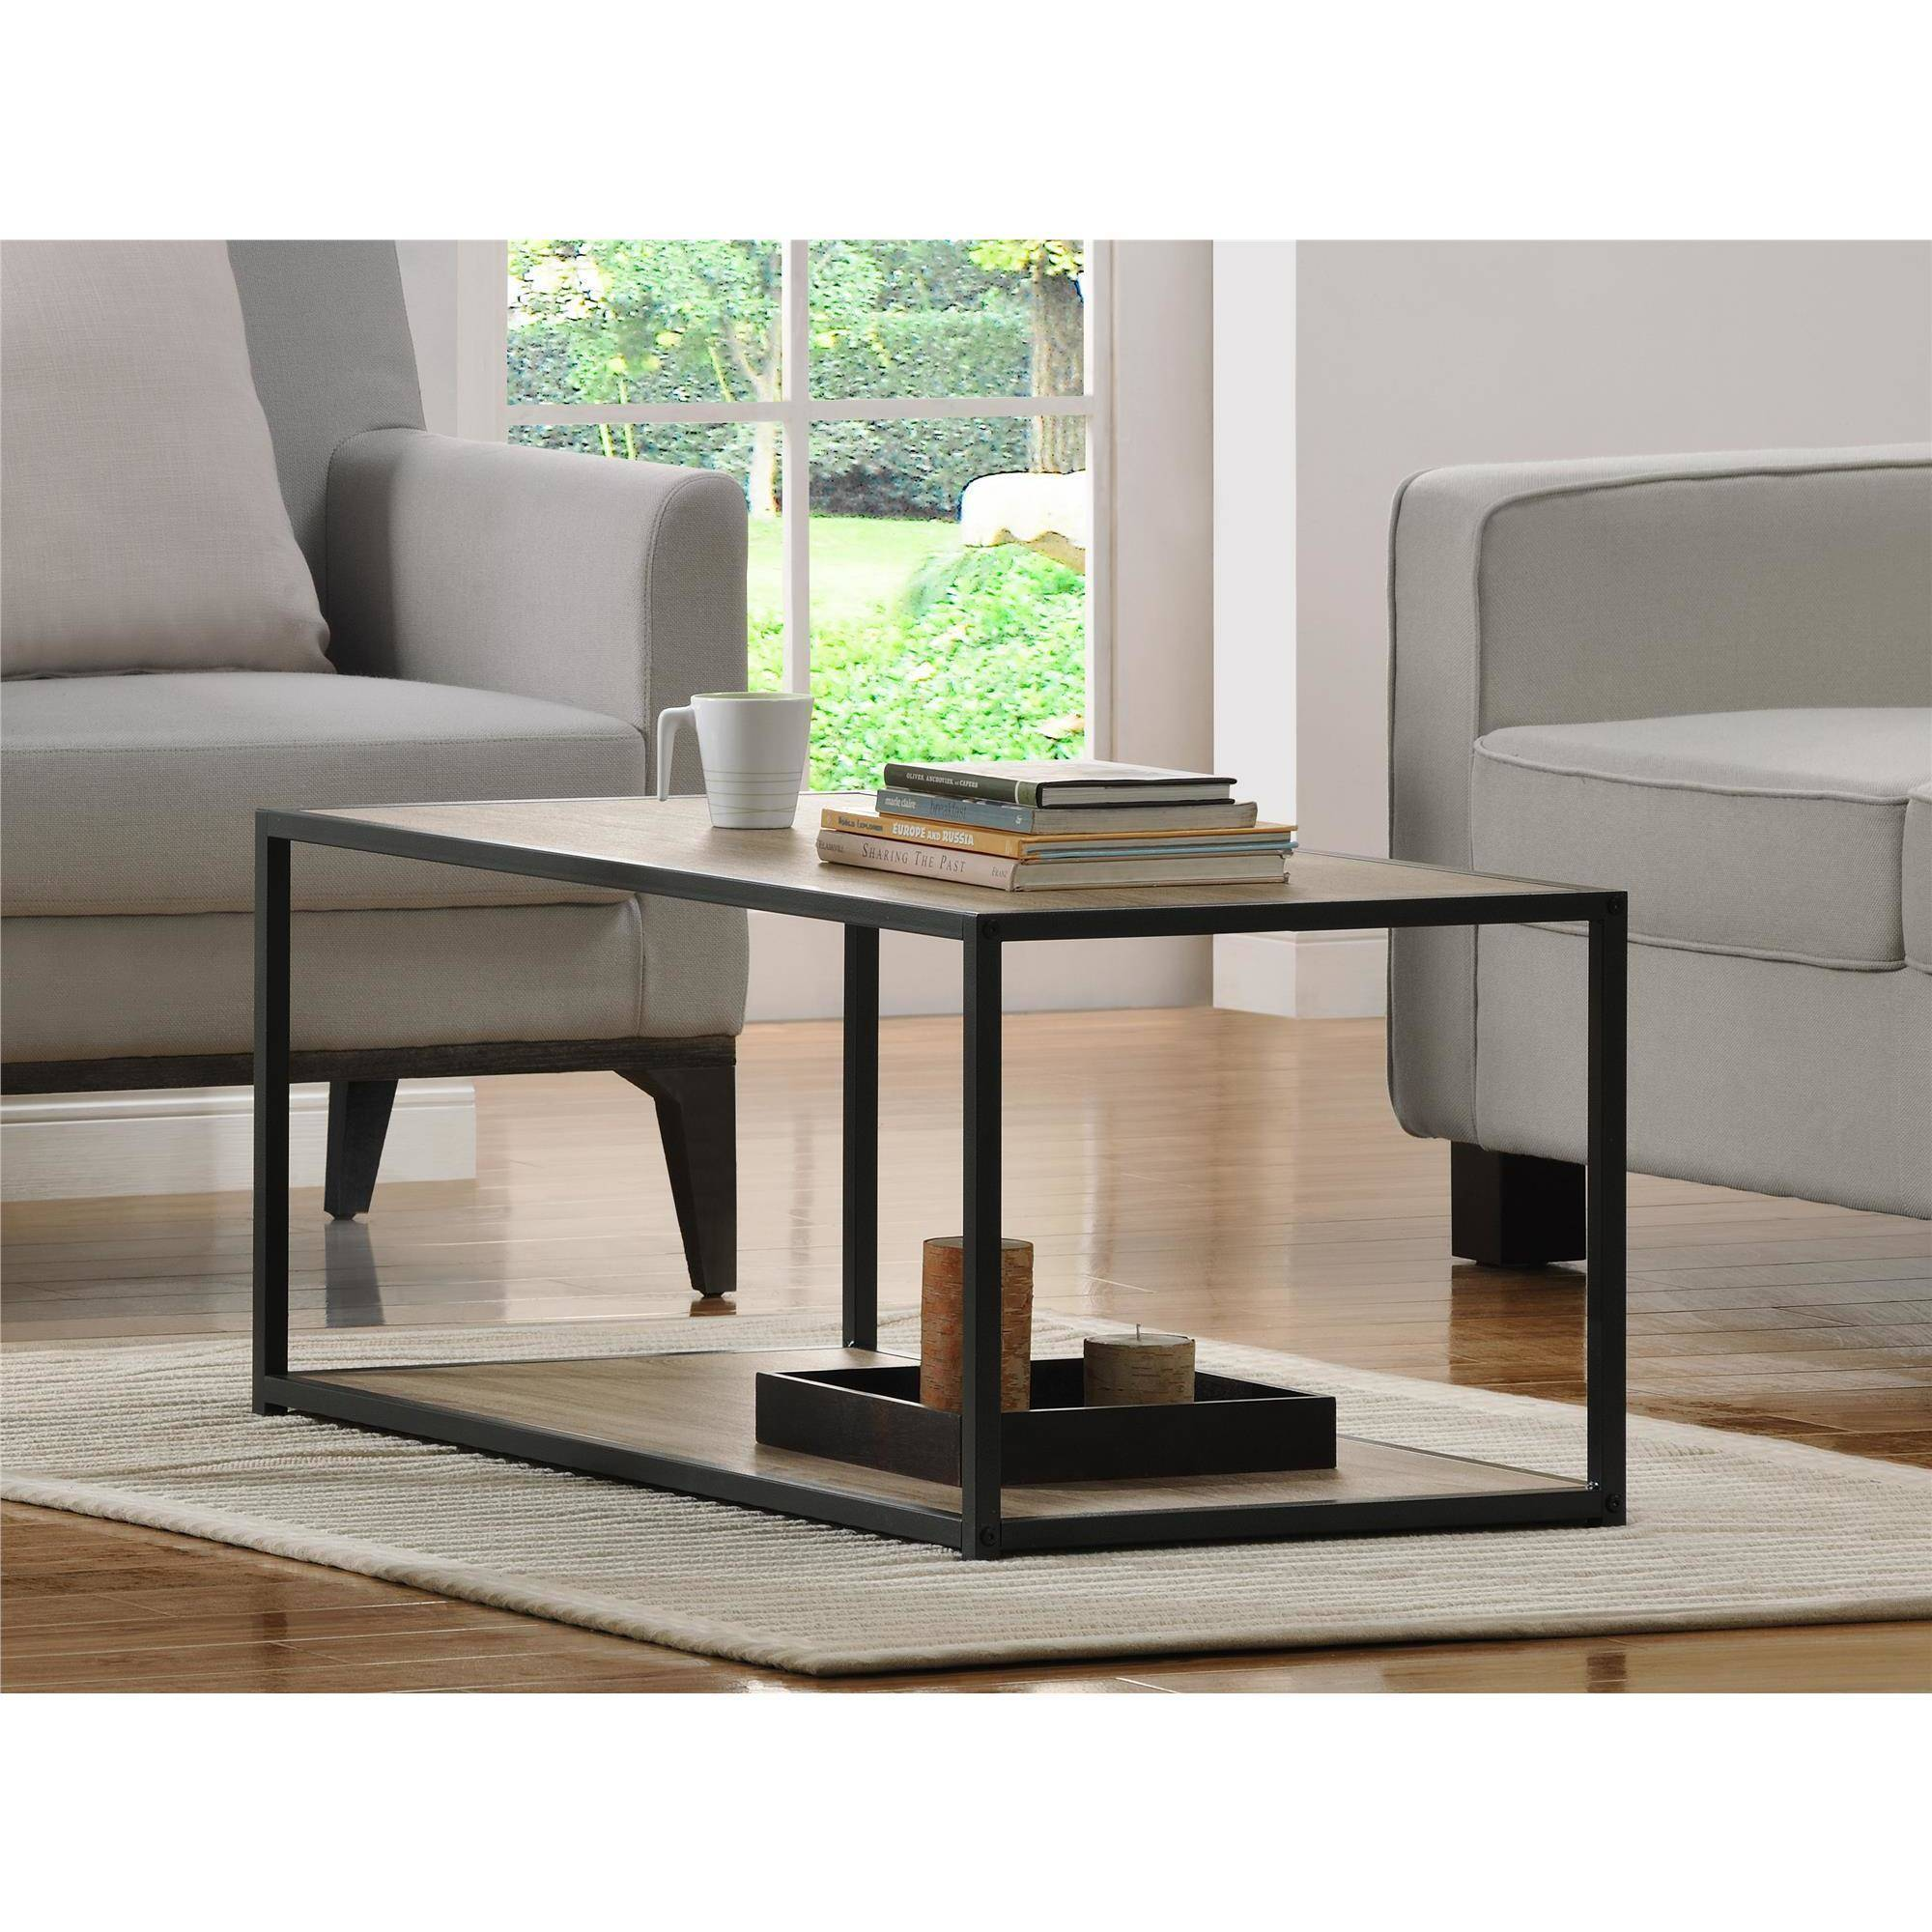 ameriwood home canton coffee table with metal frame, distressed